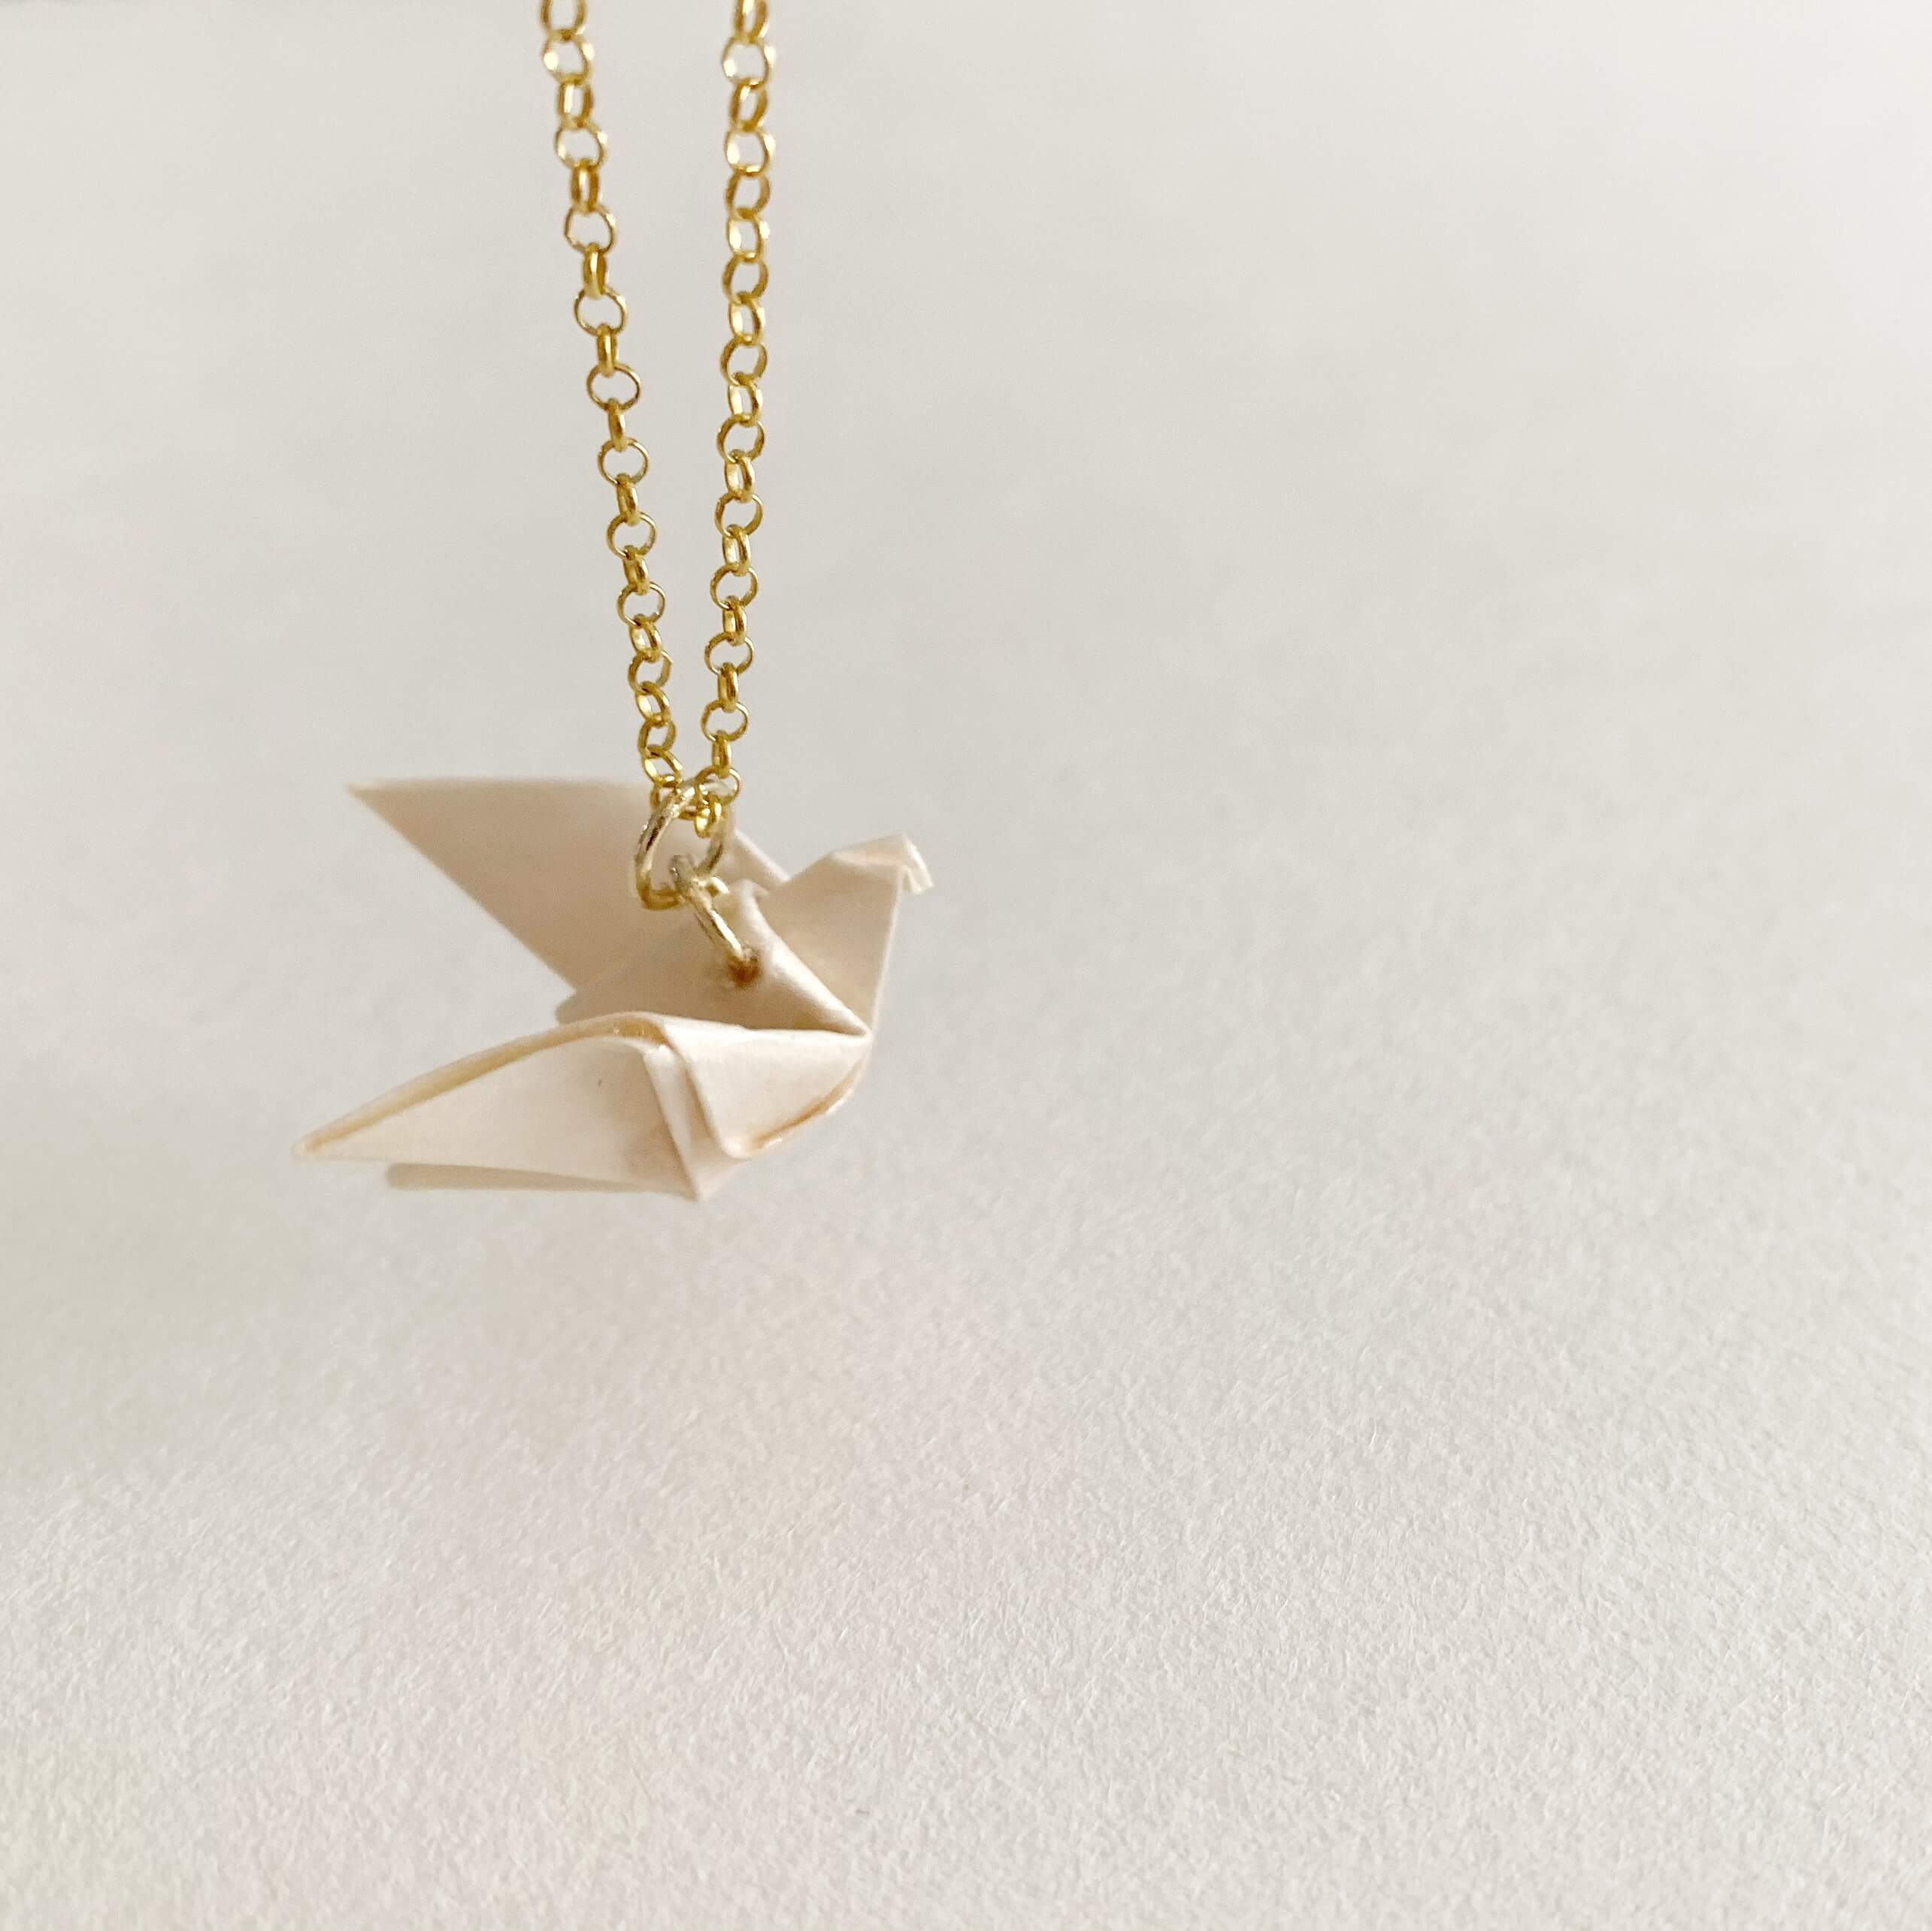 solidarity origami dove gold plated silver necklace